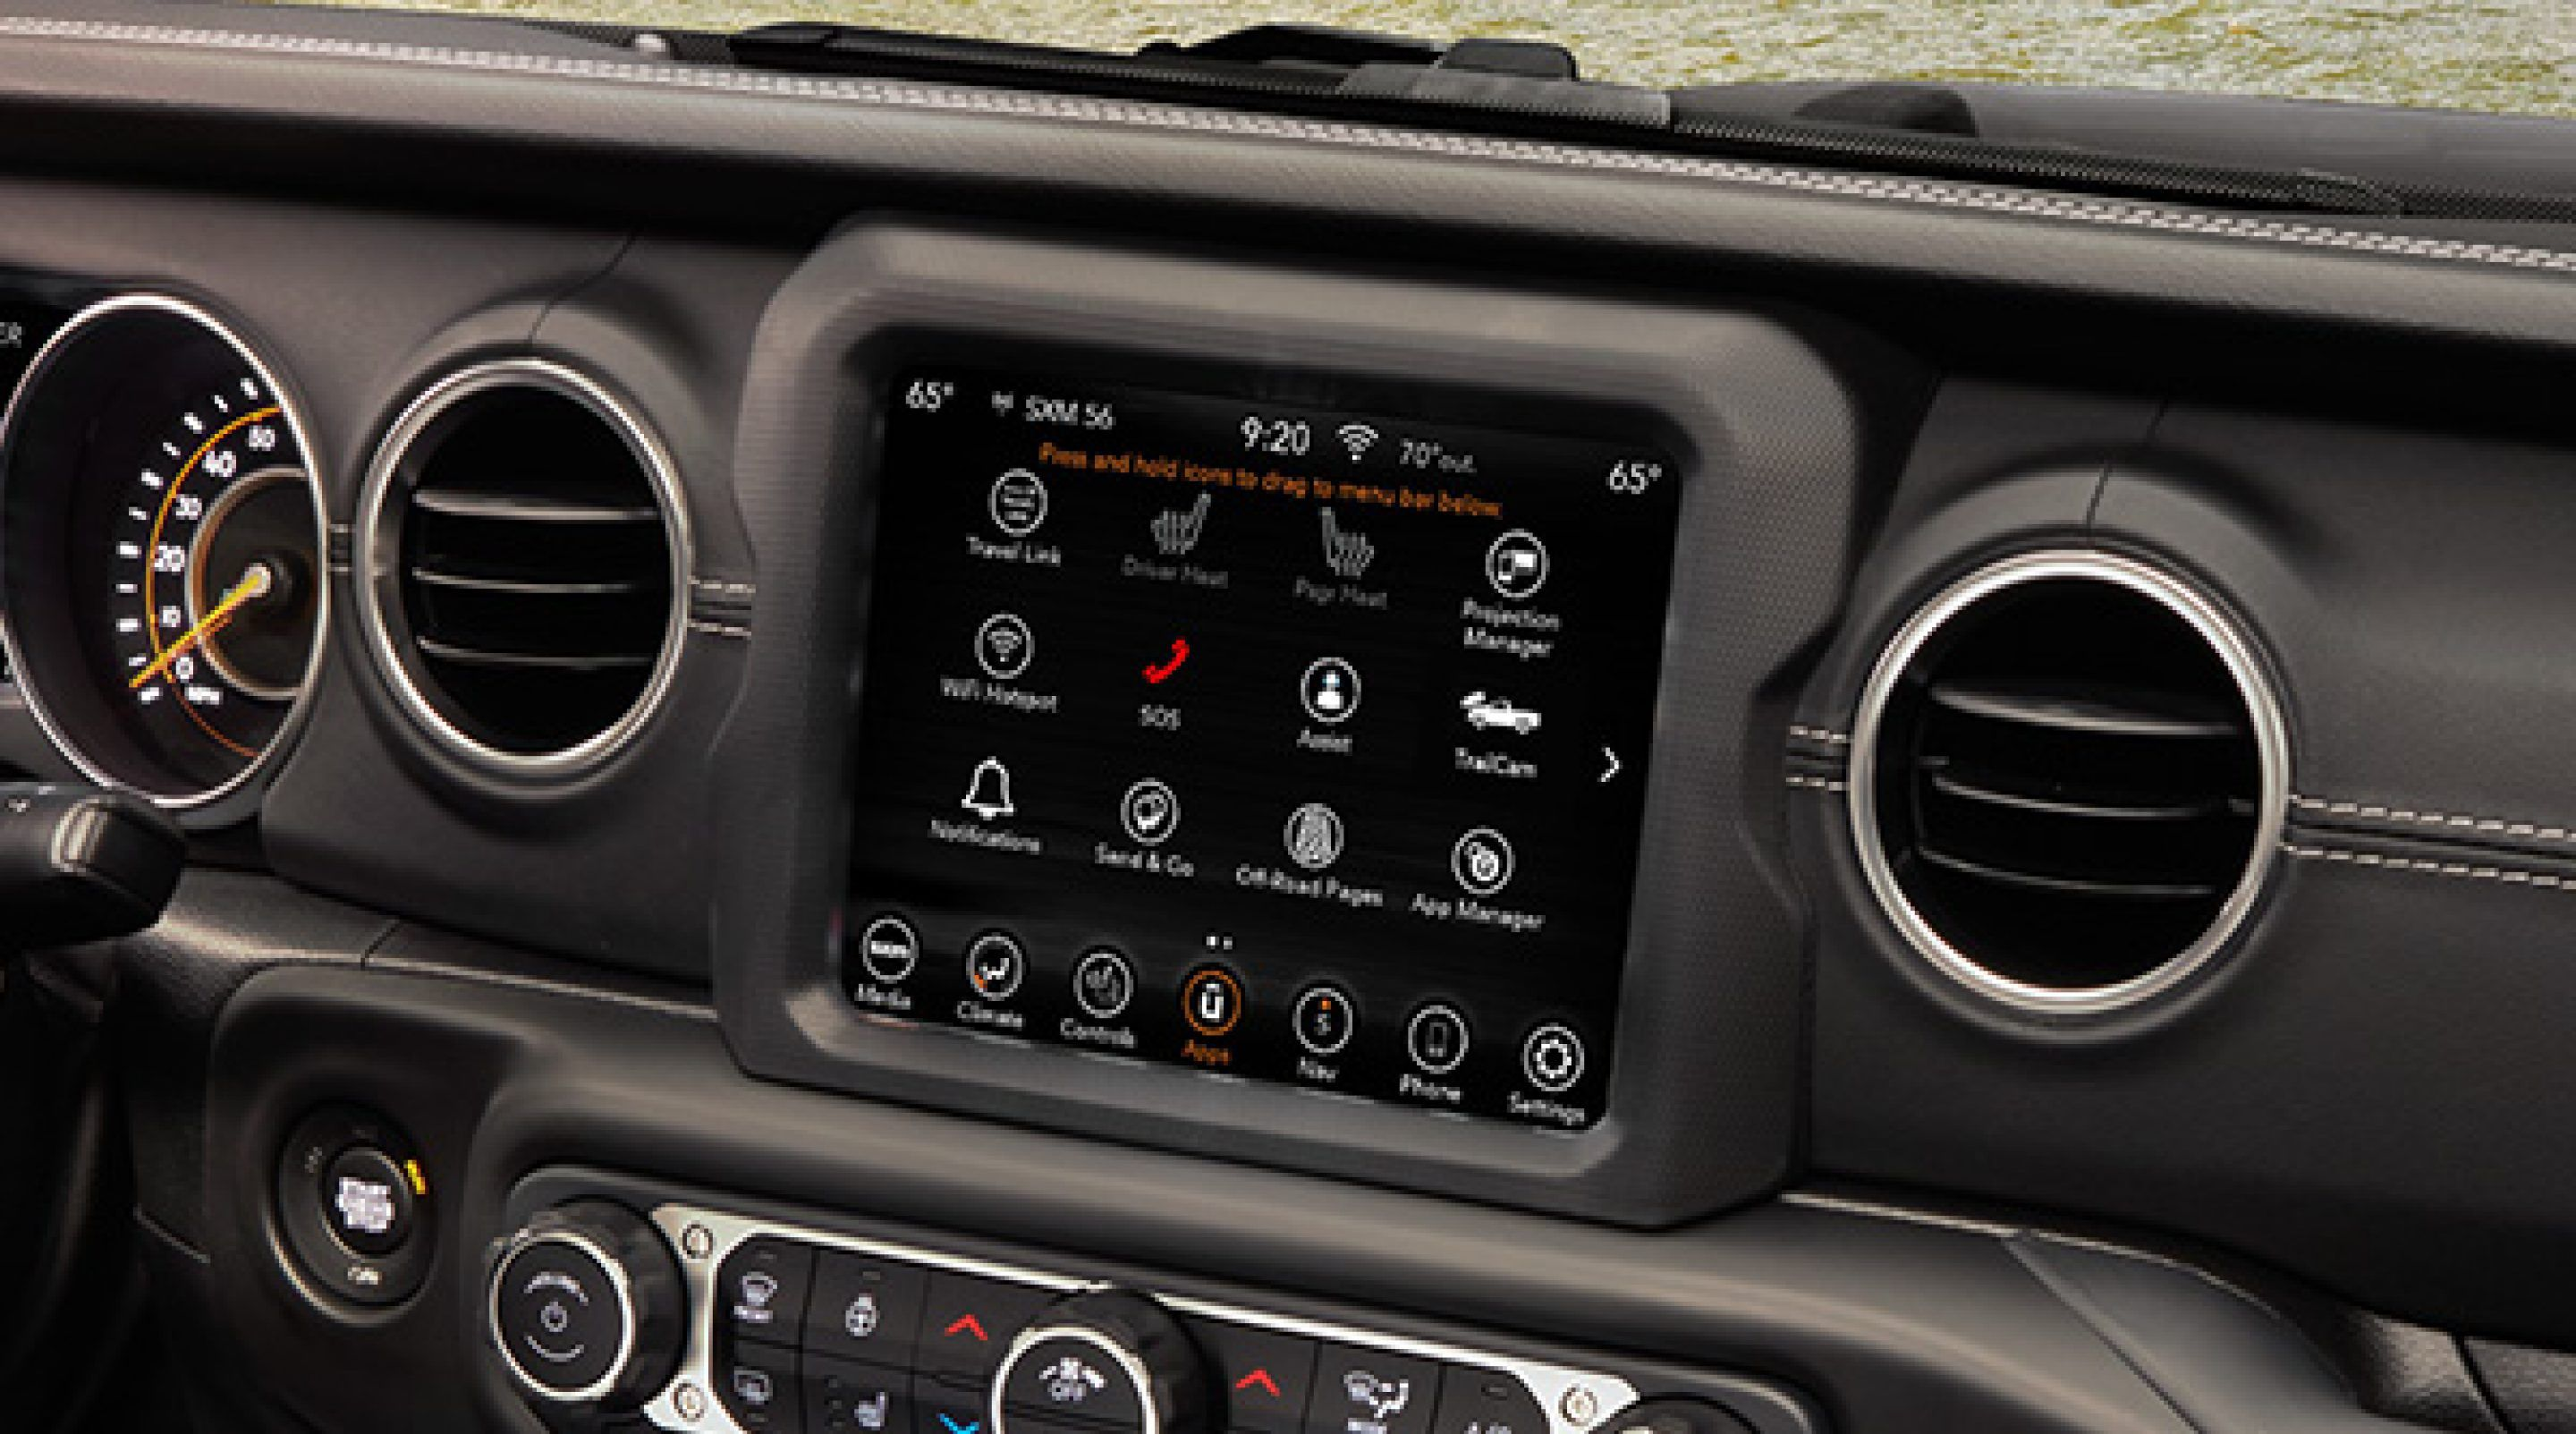 2020-Jeep-Gladiator-Safety-Convenience-Bluetooth.jpg.image.2880.jpg